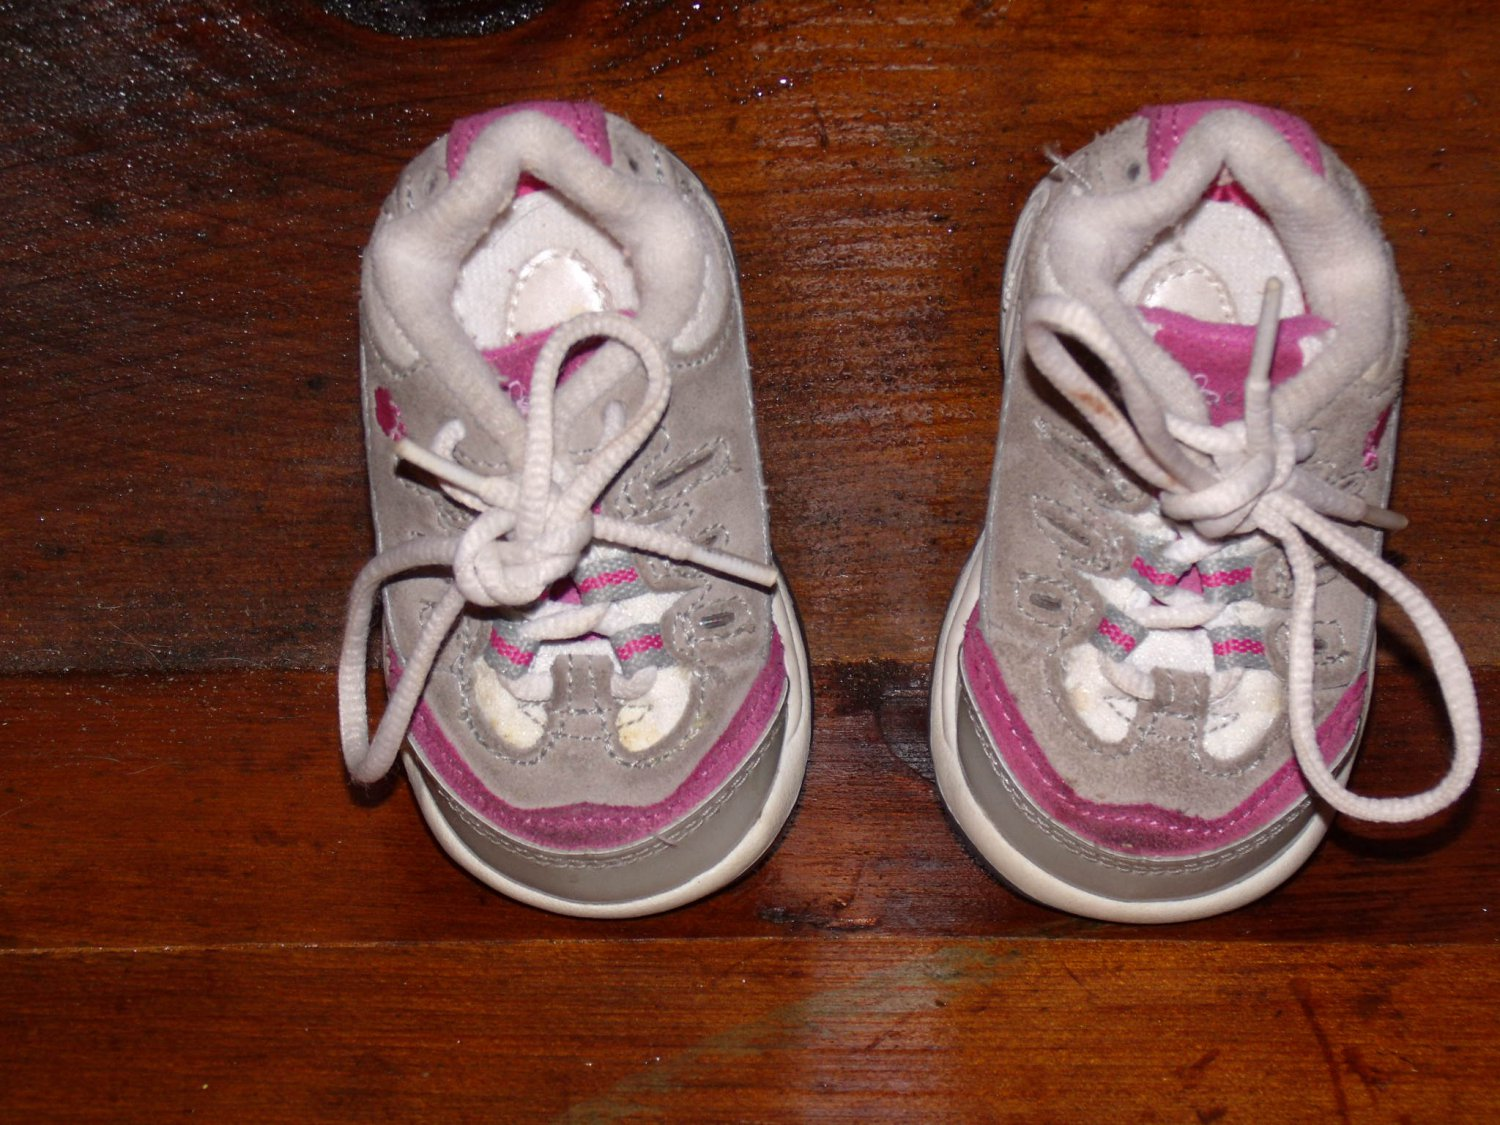 size 2 baby infant toddler sneaker tennis shoe